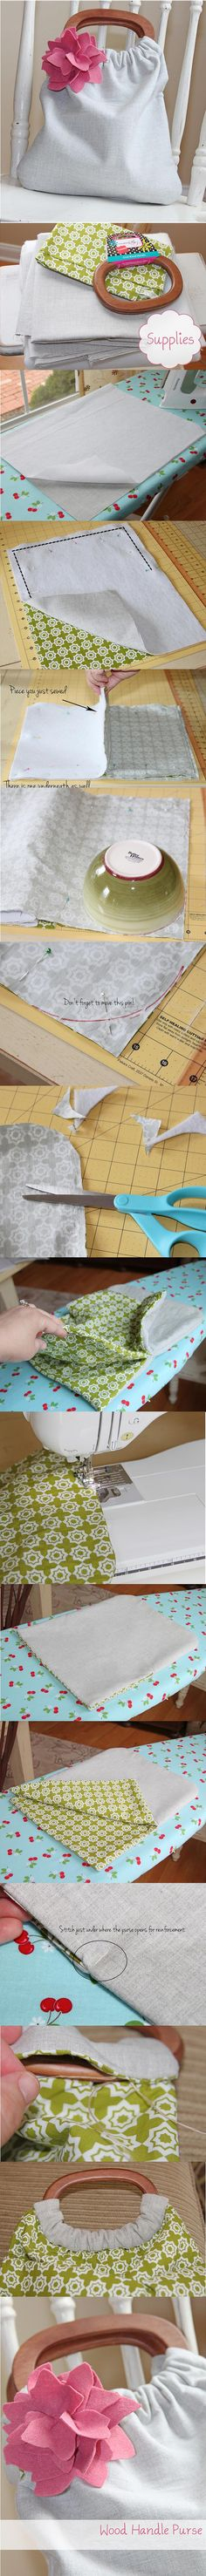 DIY: Bag Made ​​With Wooden Handles And Material